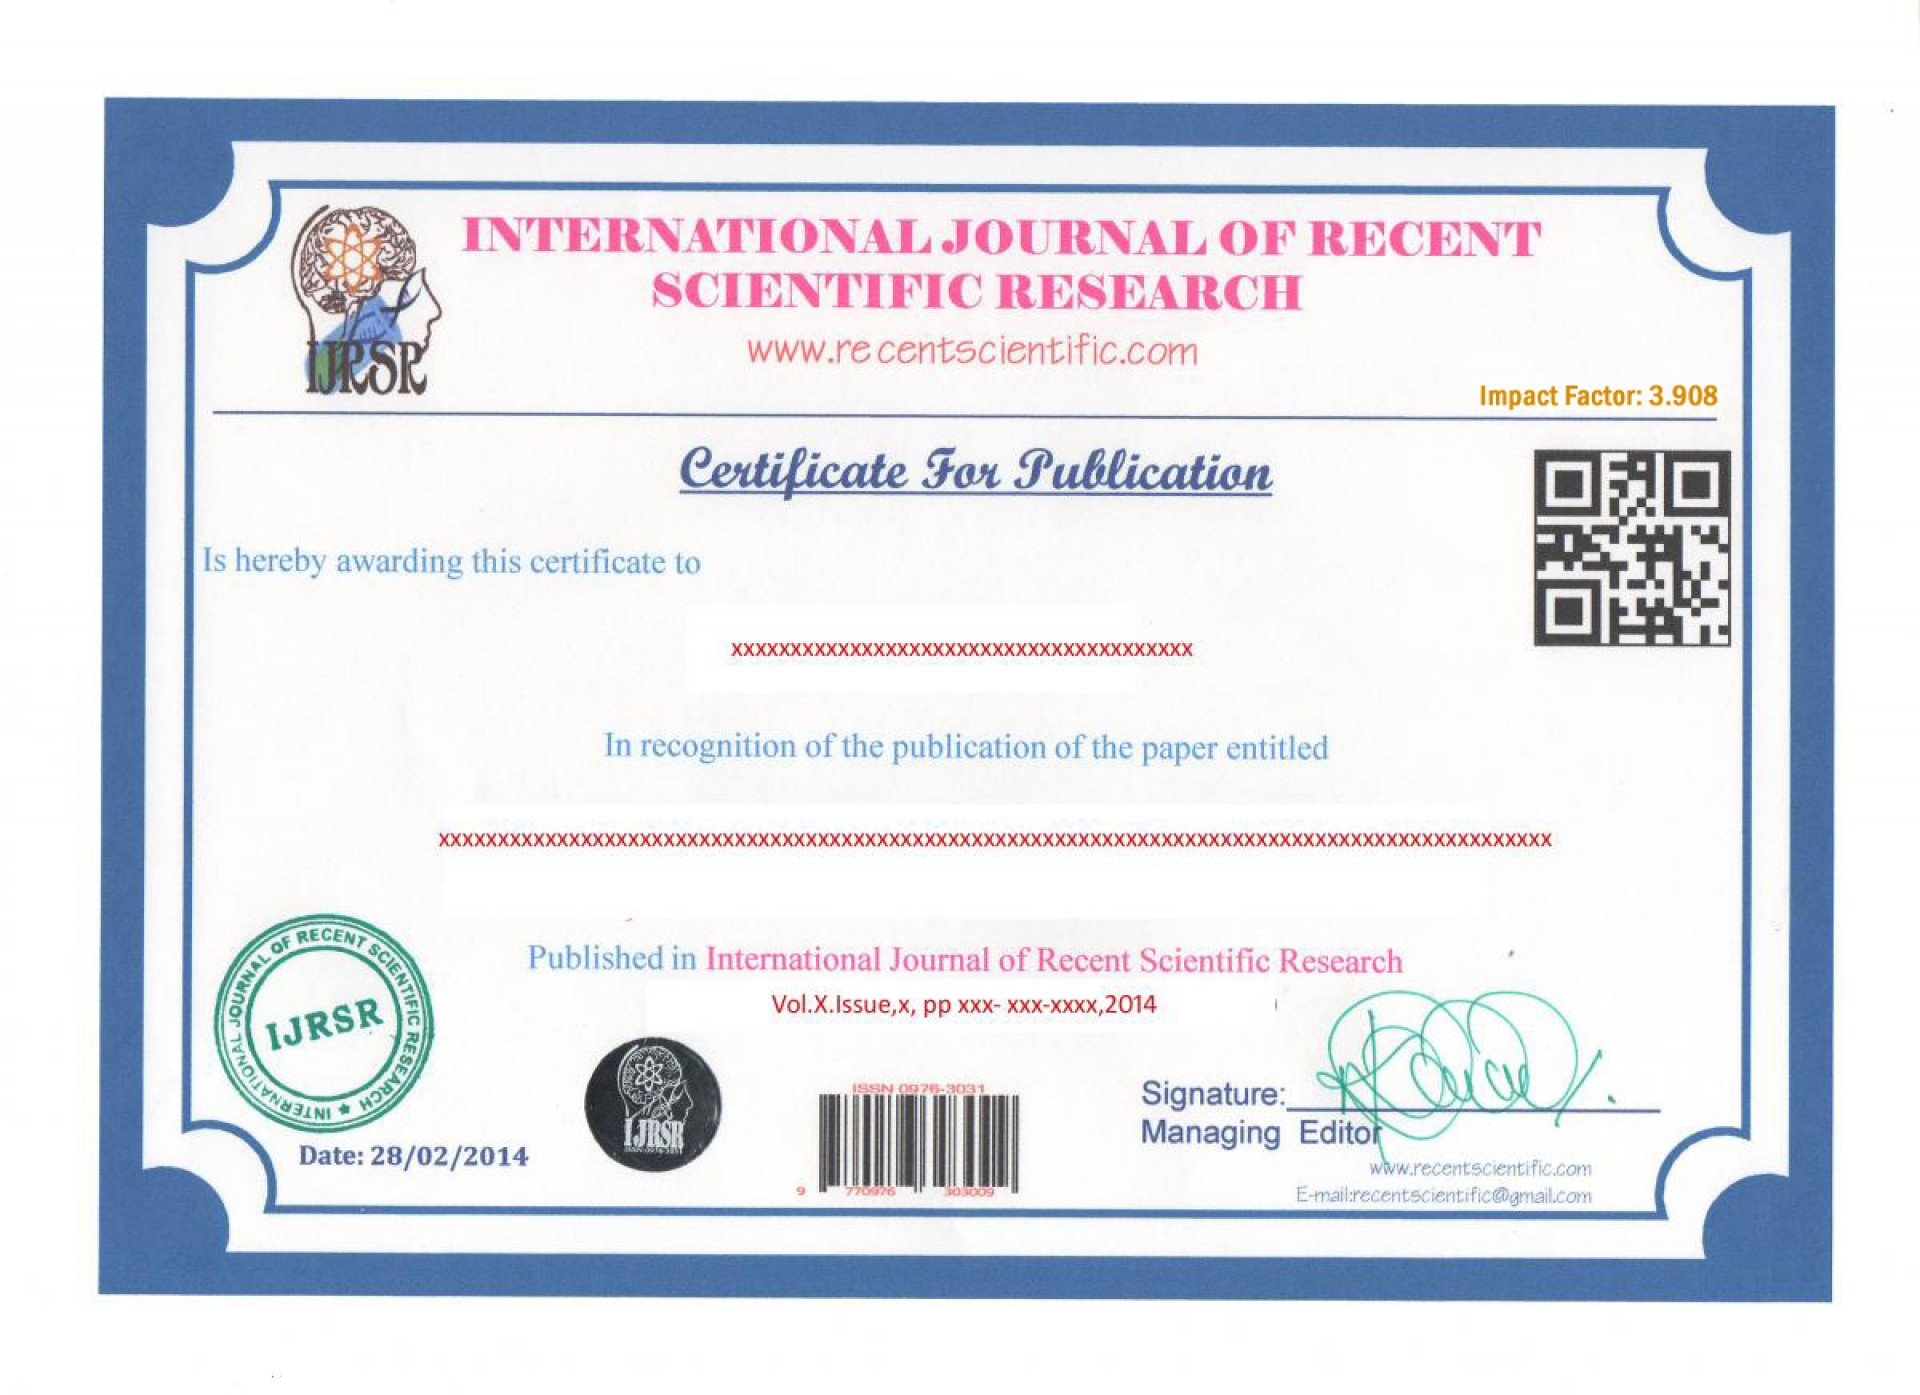 007 Certificate20copy Research Paper How To Publish In International Journal Free Unusual Pdf 1920